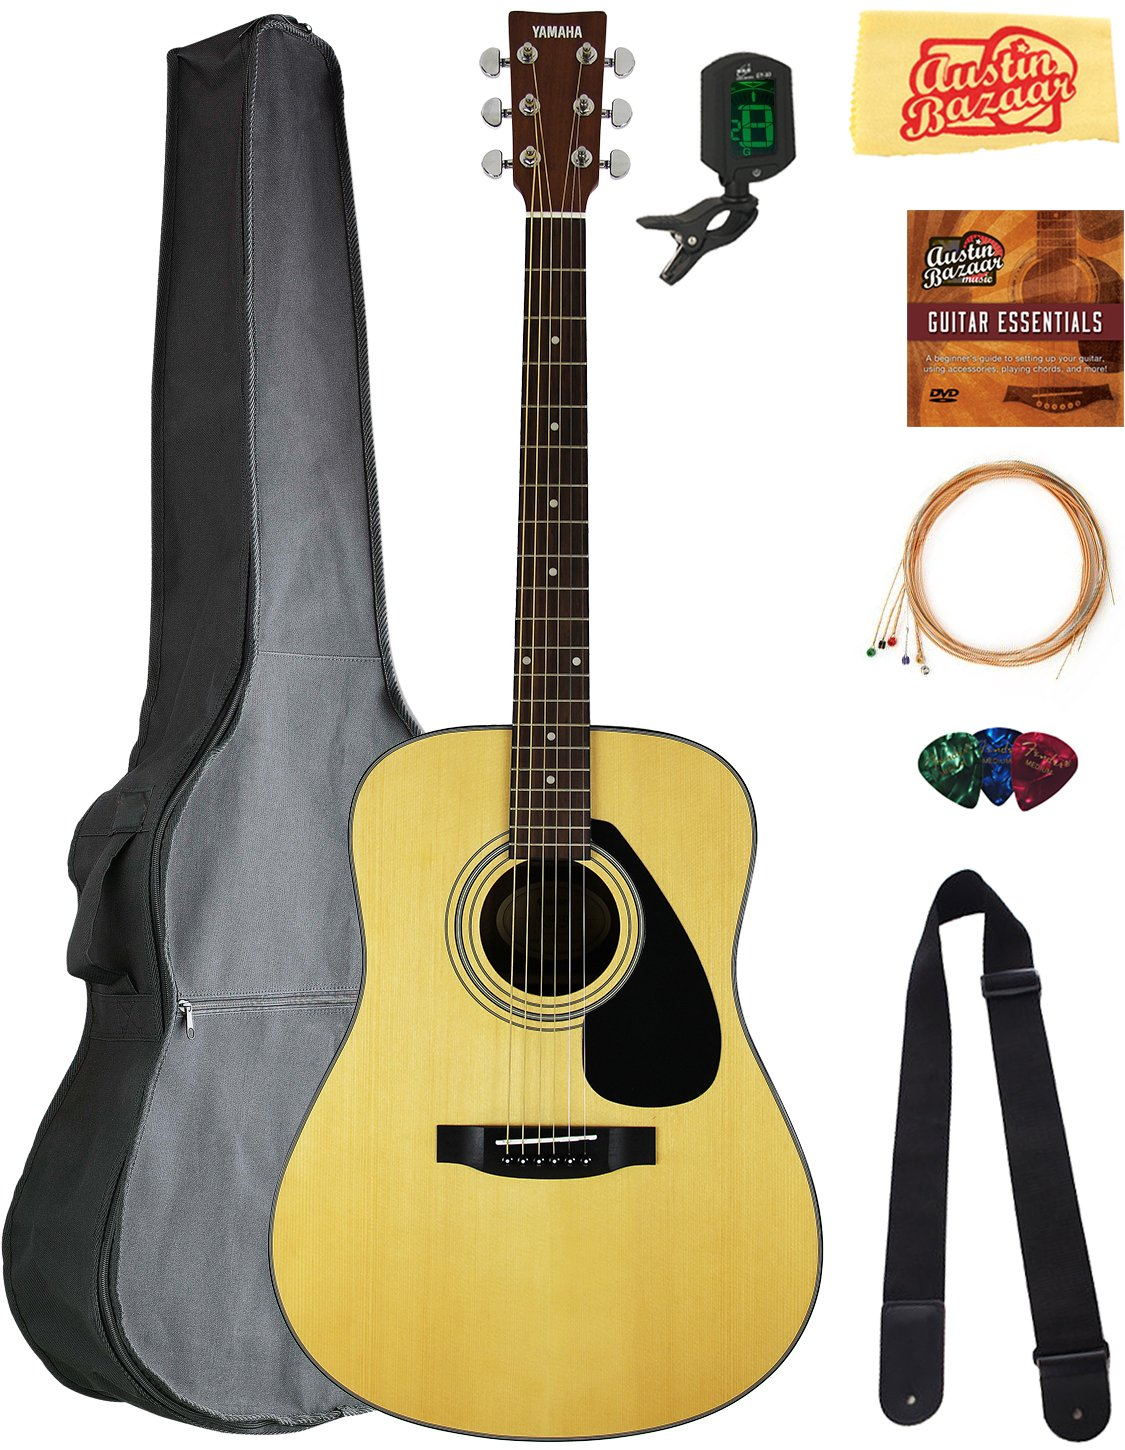 Yamaha F325D Dreadnought Acoustic Guitar Bundle with Gig Bag, Tuner, Strings, Strap, Picks, Austin Bazaar Instructional DVD, and Polishing Cloth by Yamaha